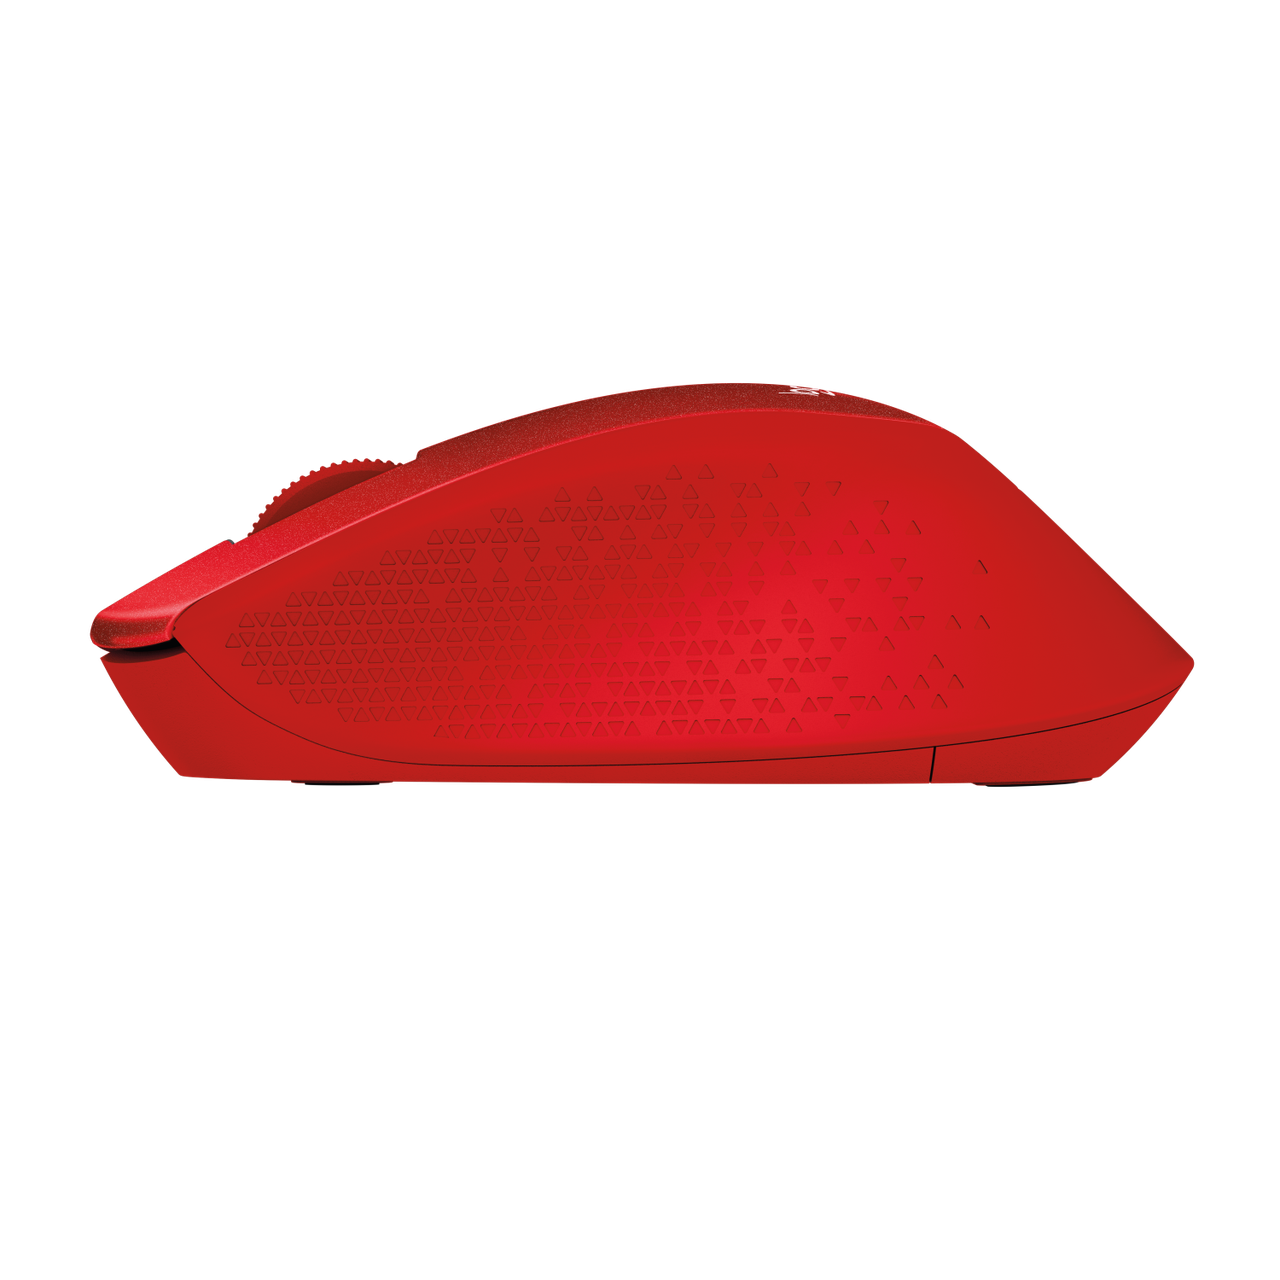 Logitech® M330 SILENT PLUS - RED - 2.4GHZ - EMEA